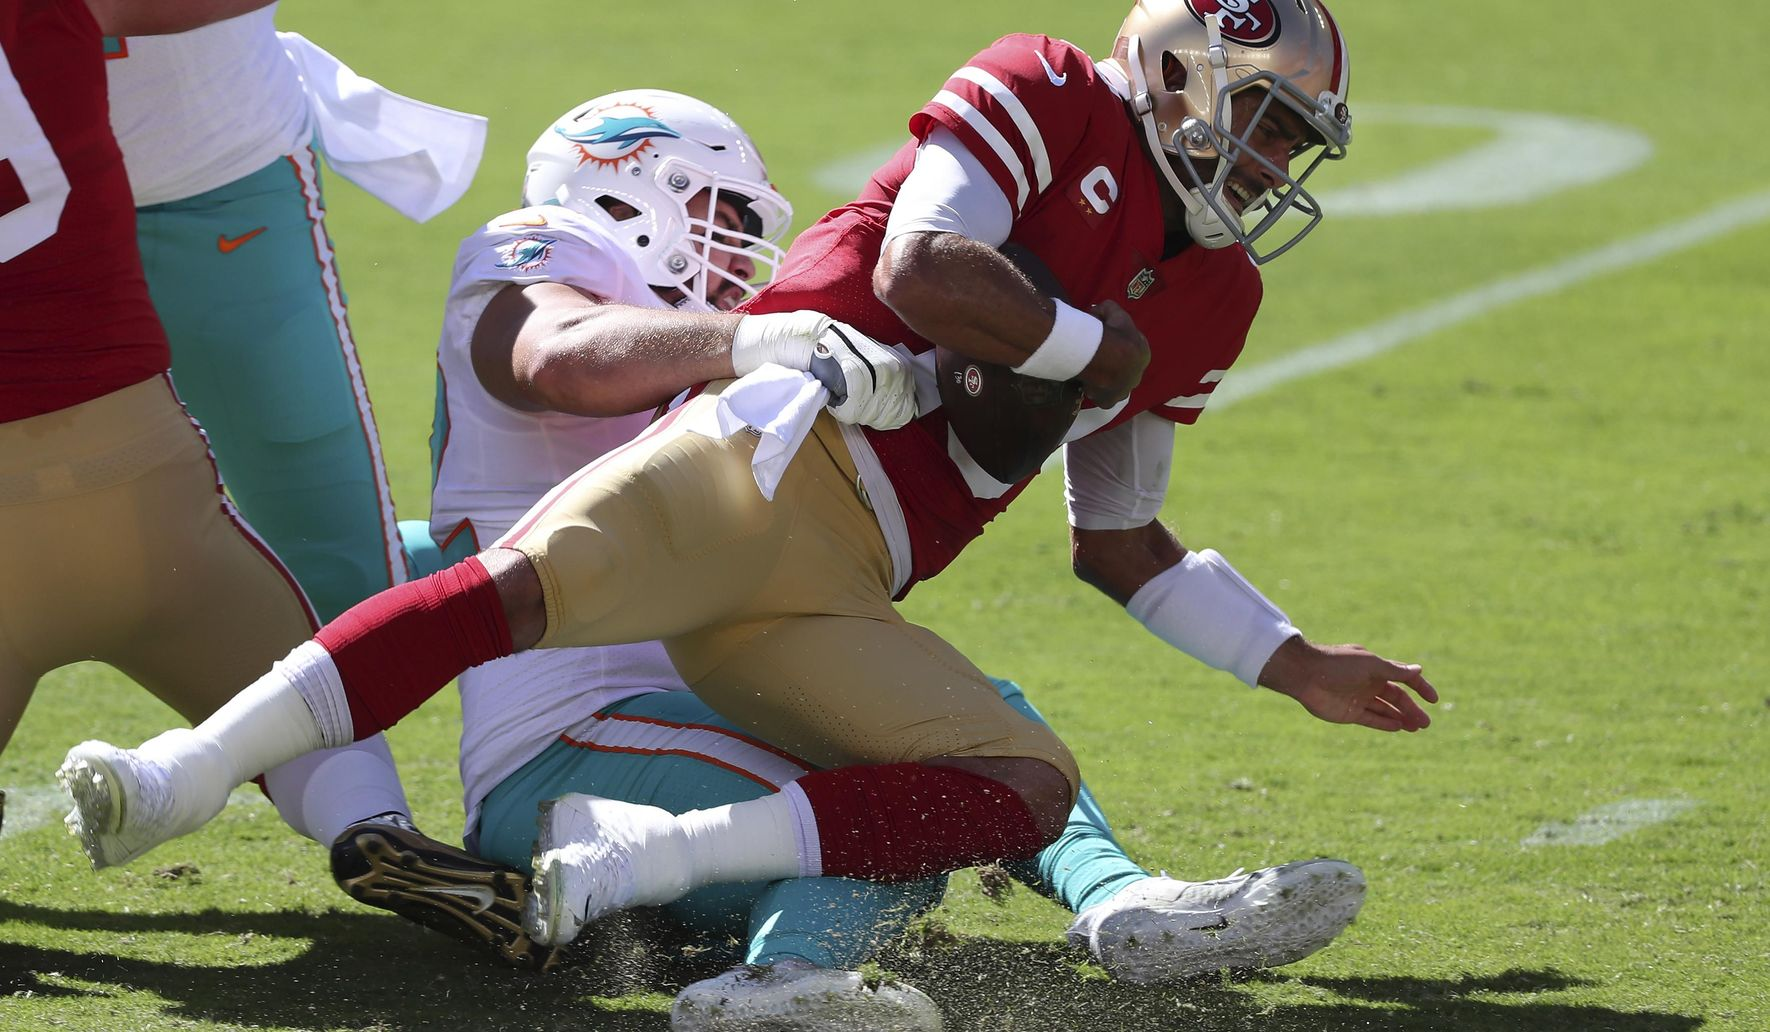 Dolphins_49ers_football_03070_c0-148-3537-2210_s1770x1032